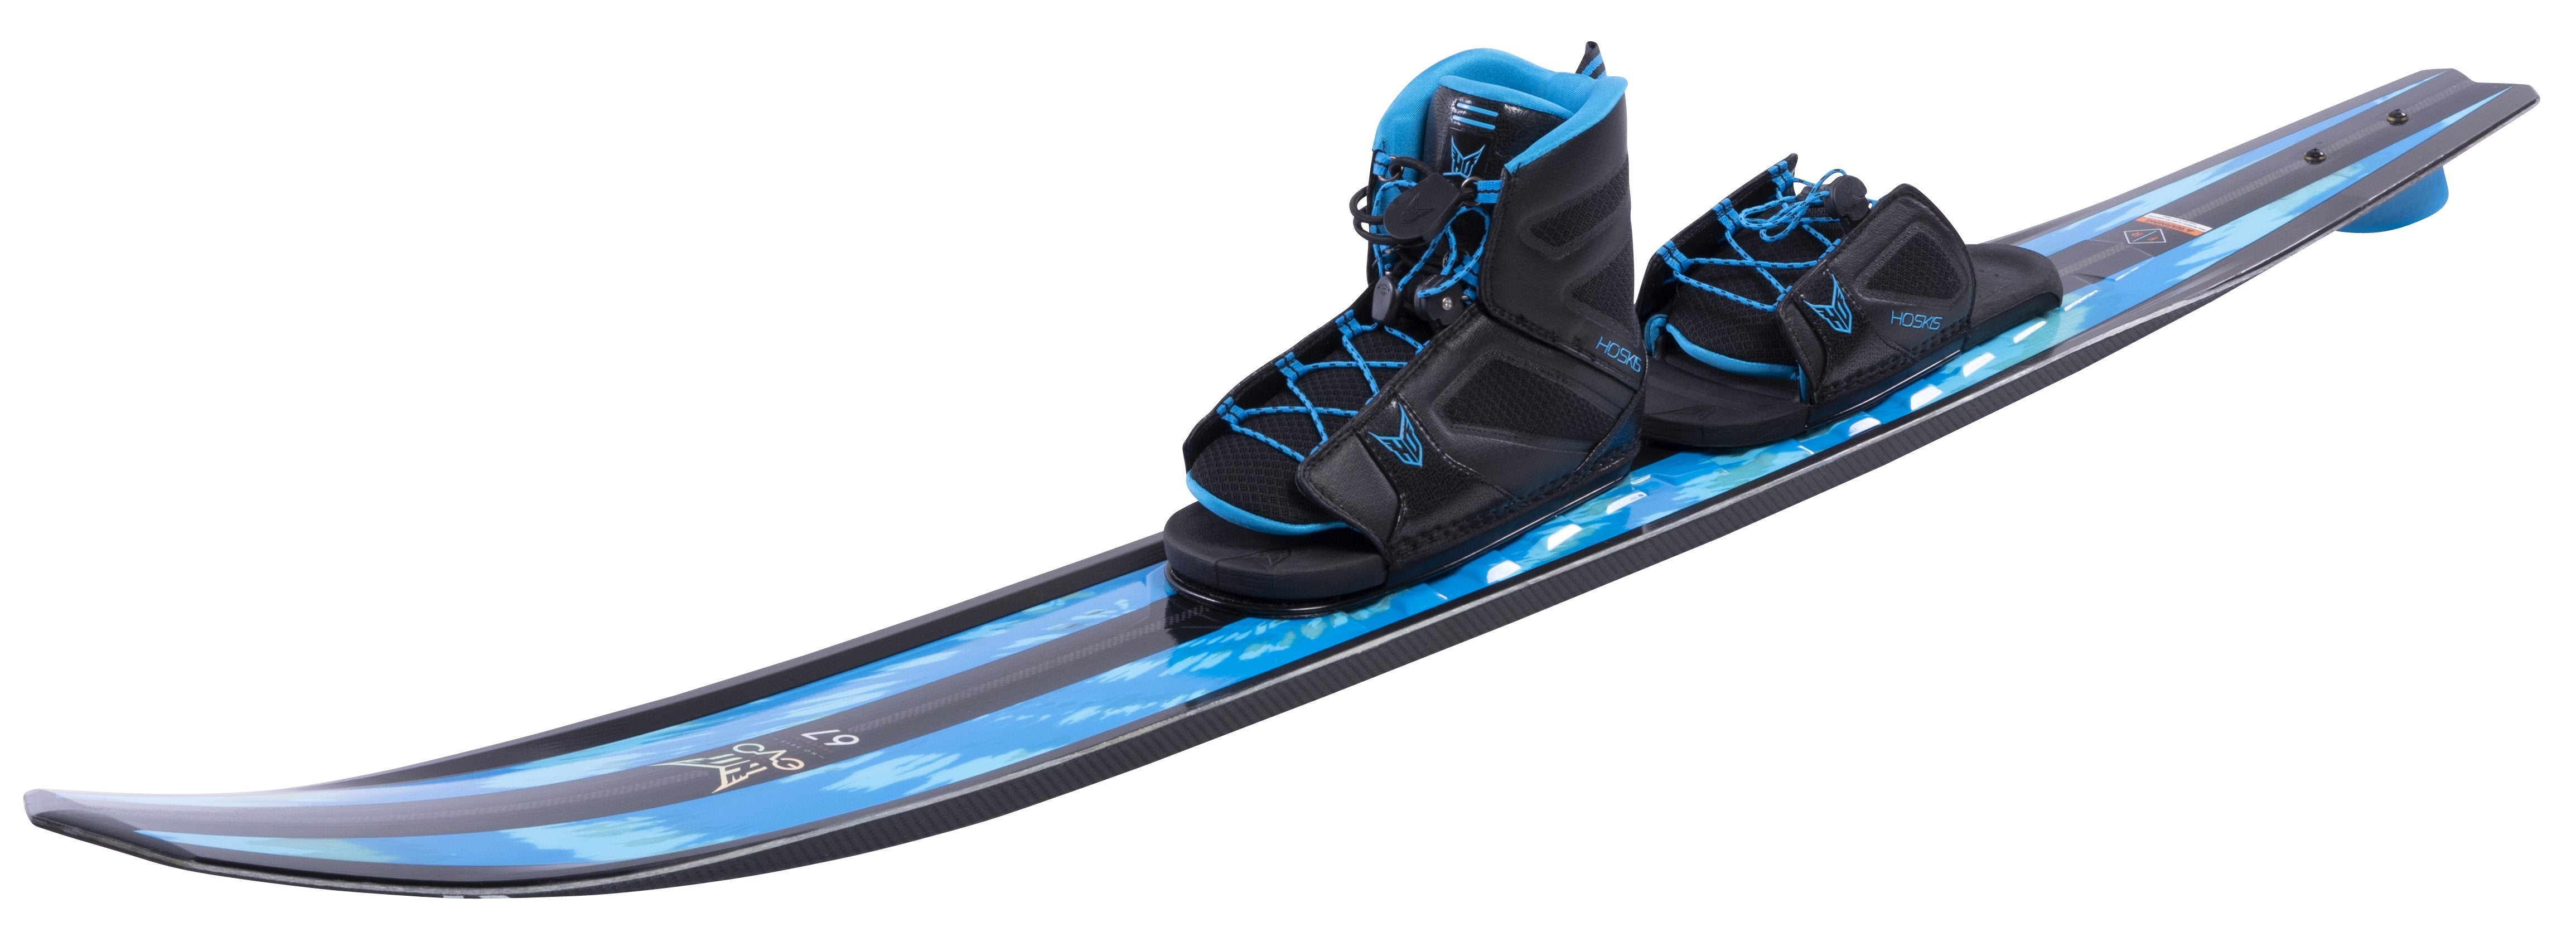 HO Evo  Water Ski with FreeMax Boots 2019 - 88 Gear